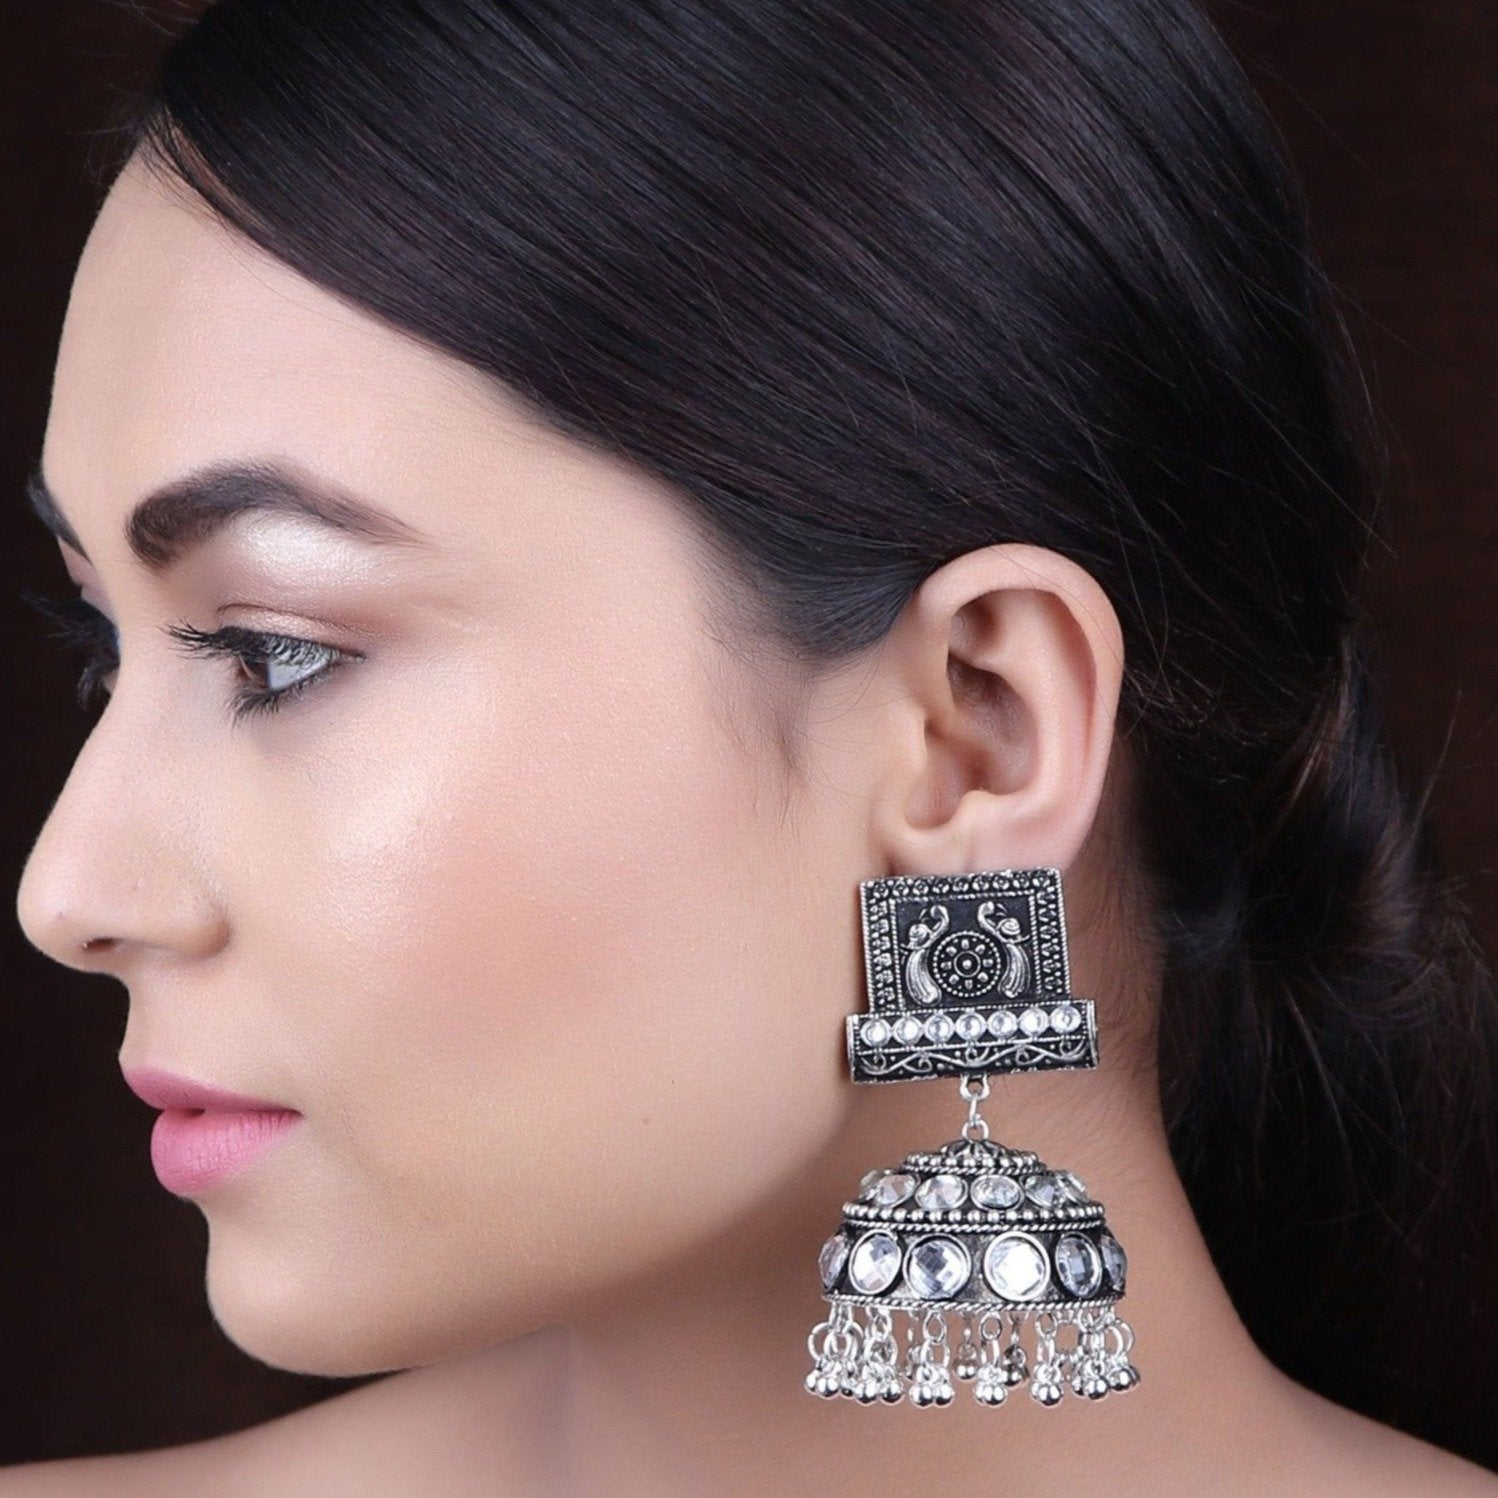 Earrings,The Farbella Jhoomer Earrings in White - Cippele Multi Store